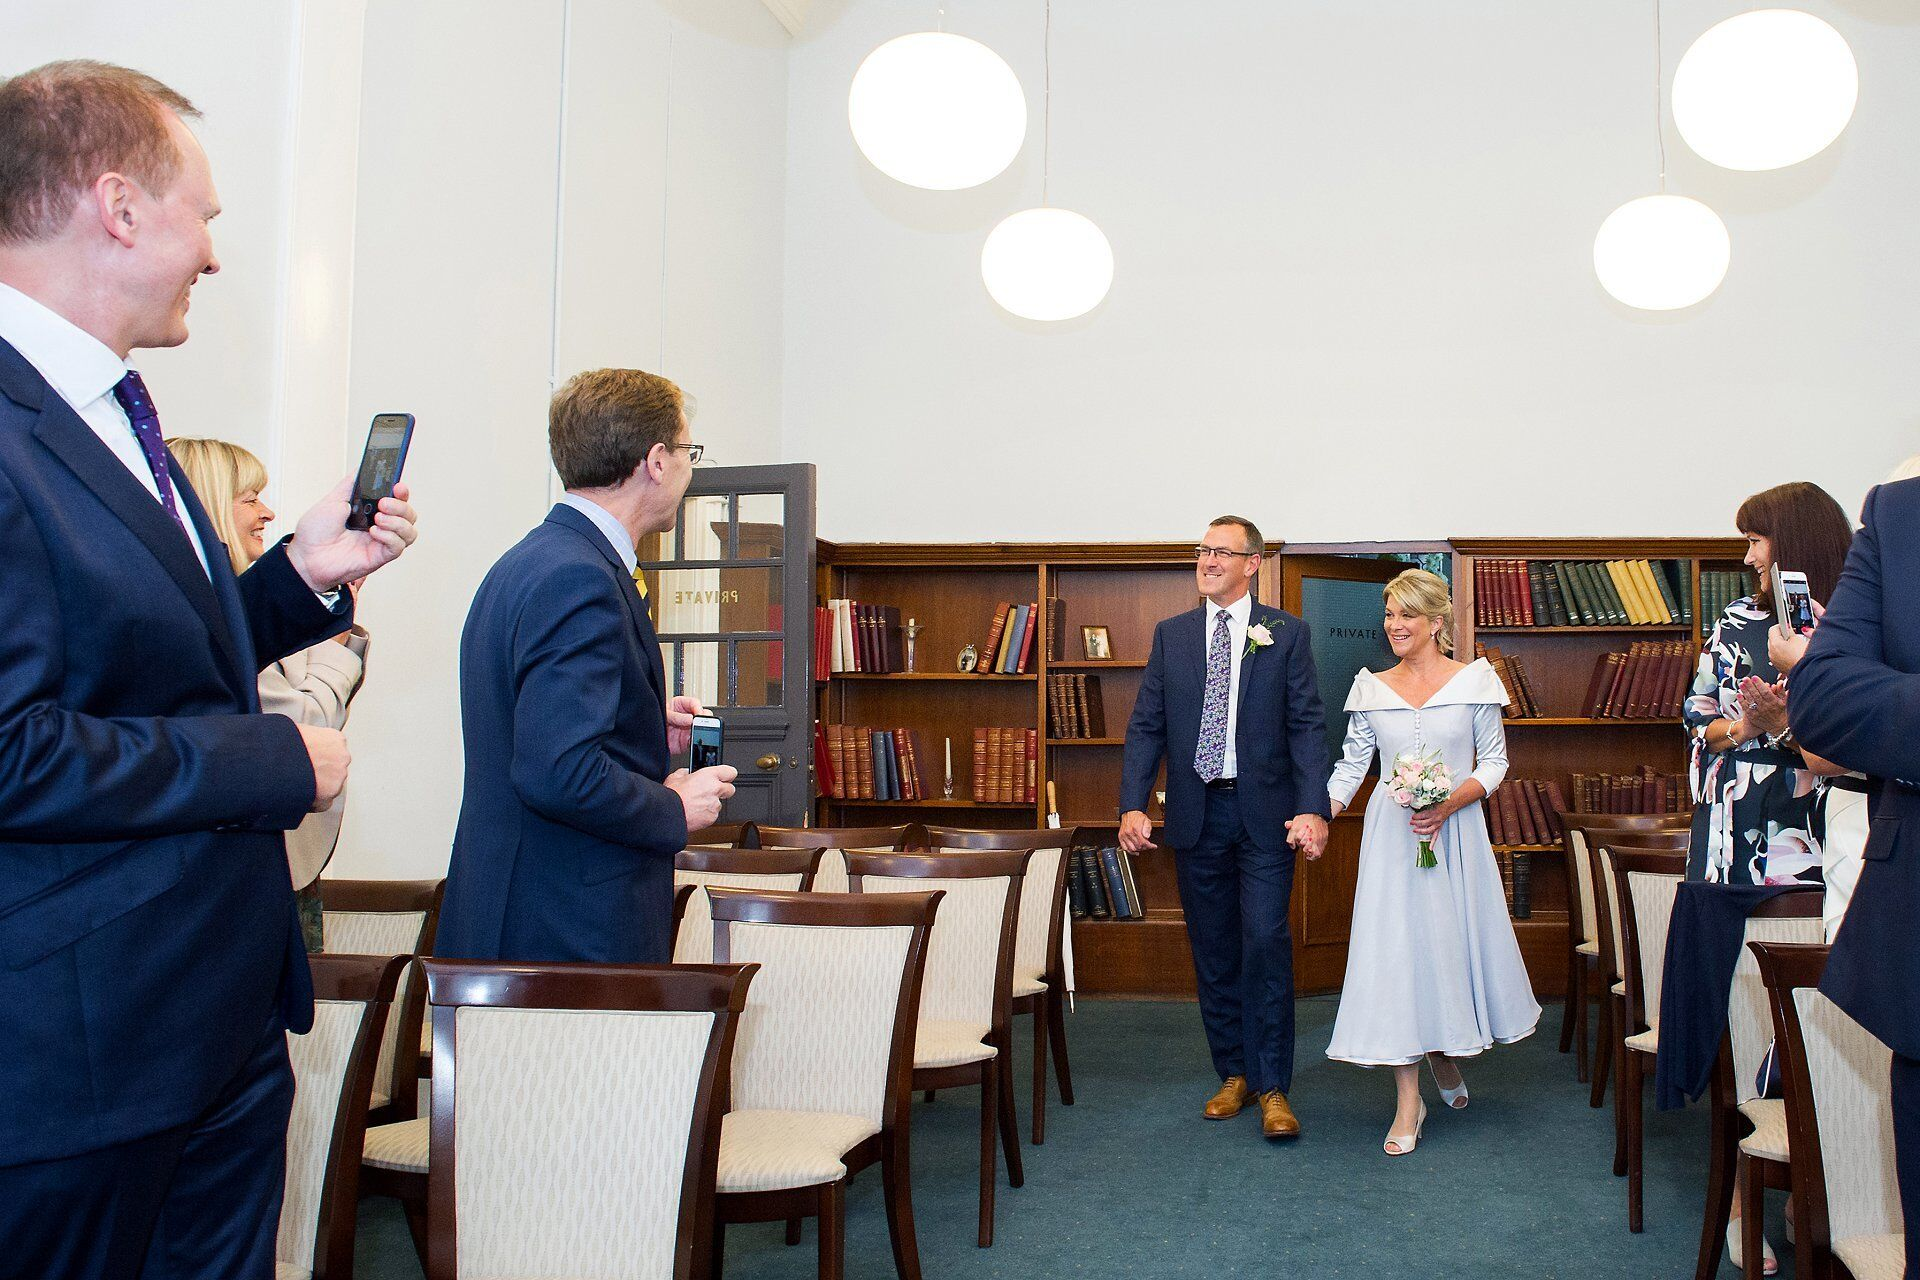 london register office wedding photographer a bride and groom walking into their civil wedding ceremony